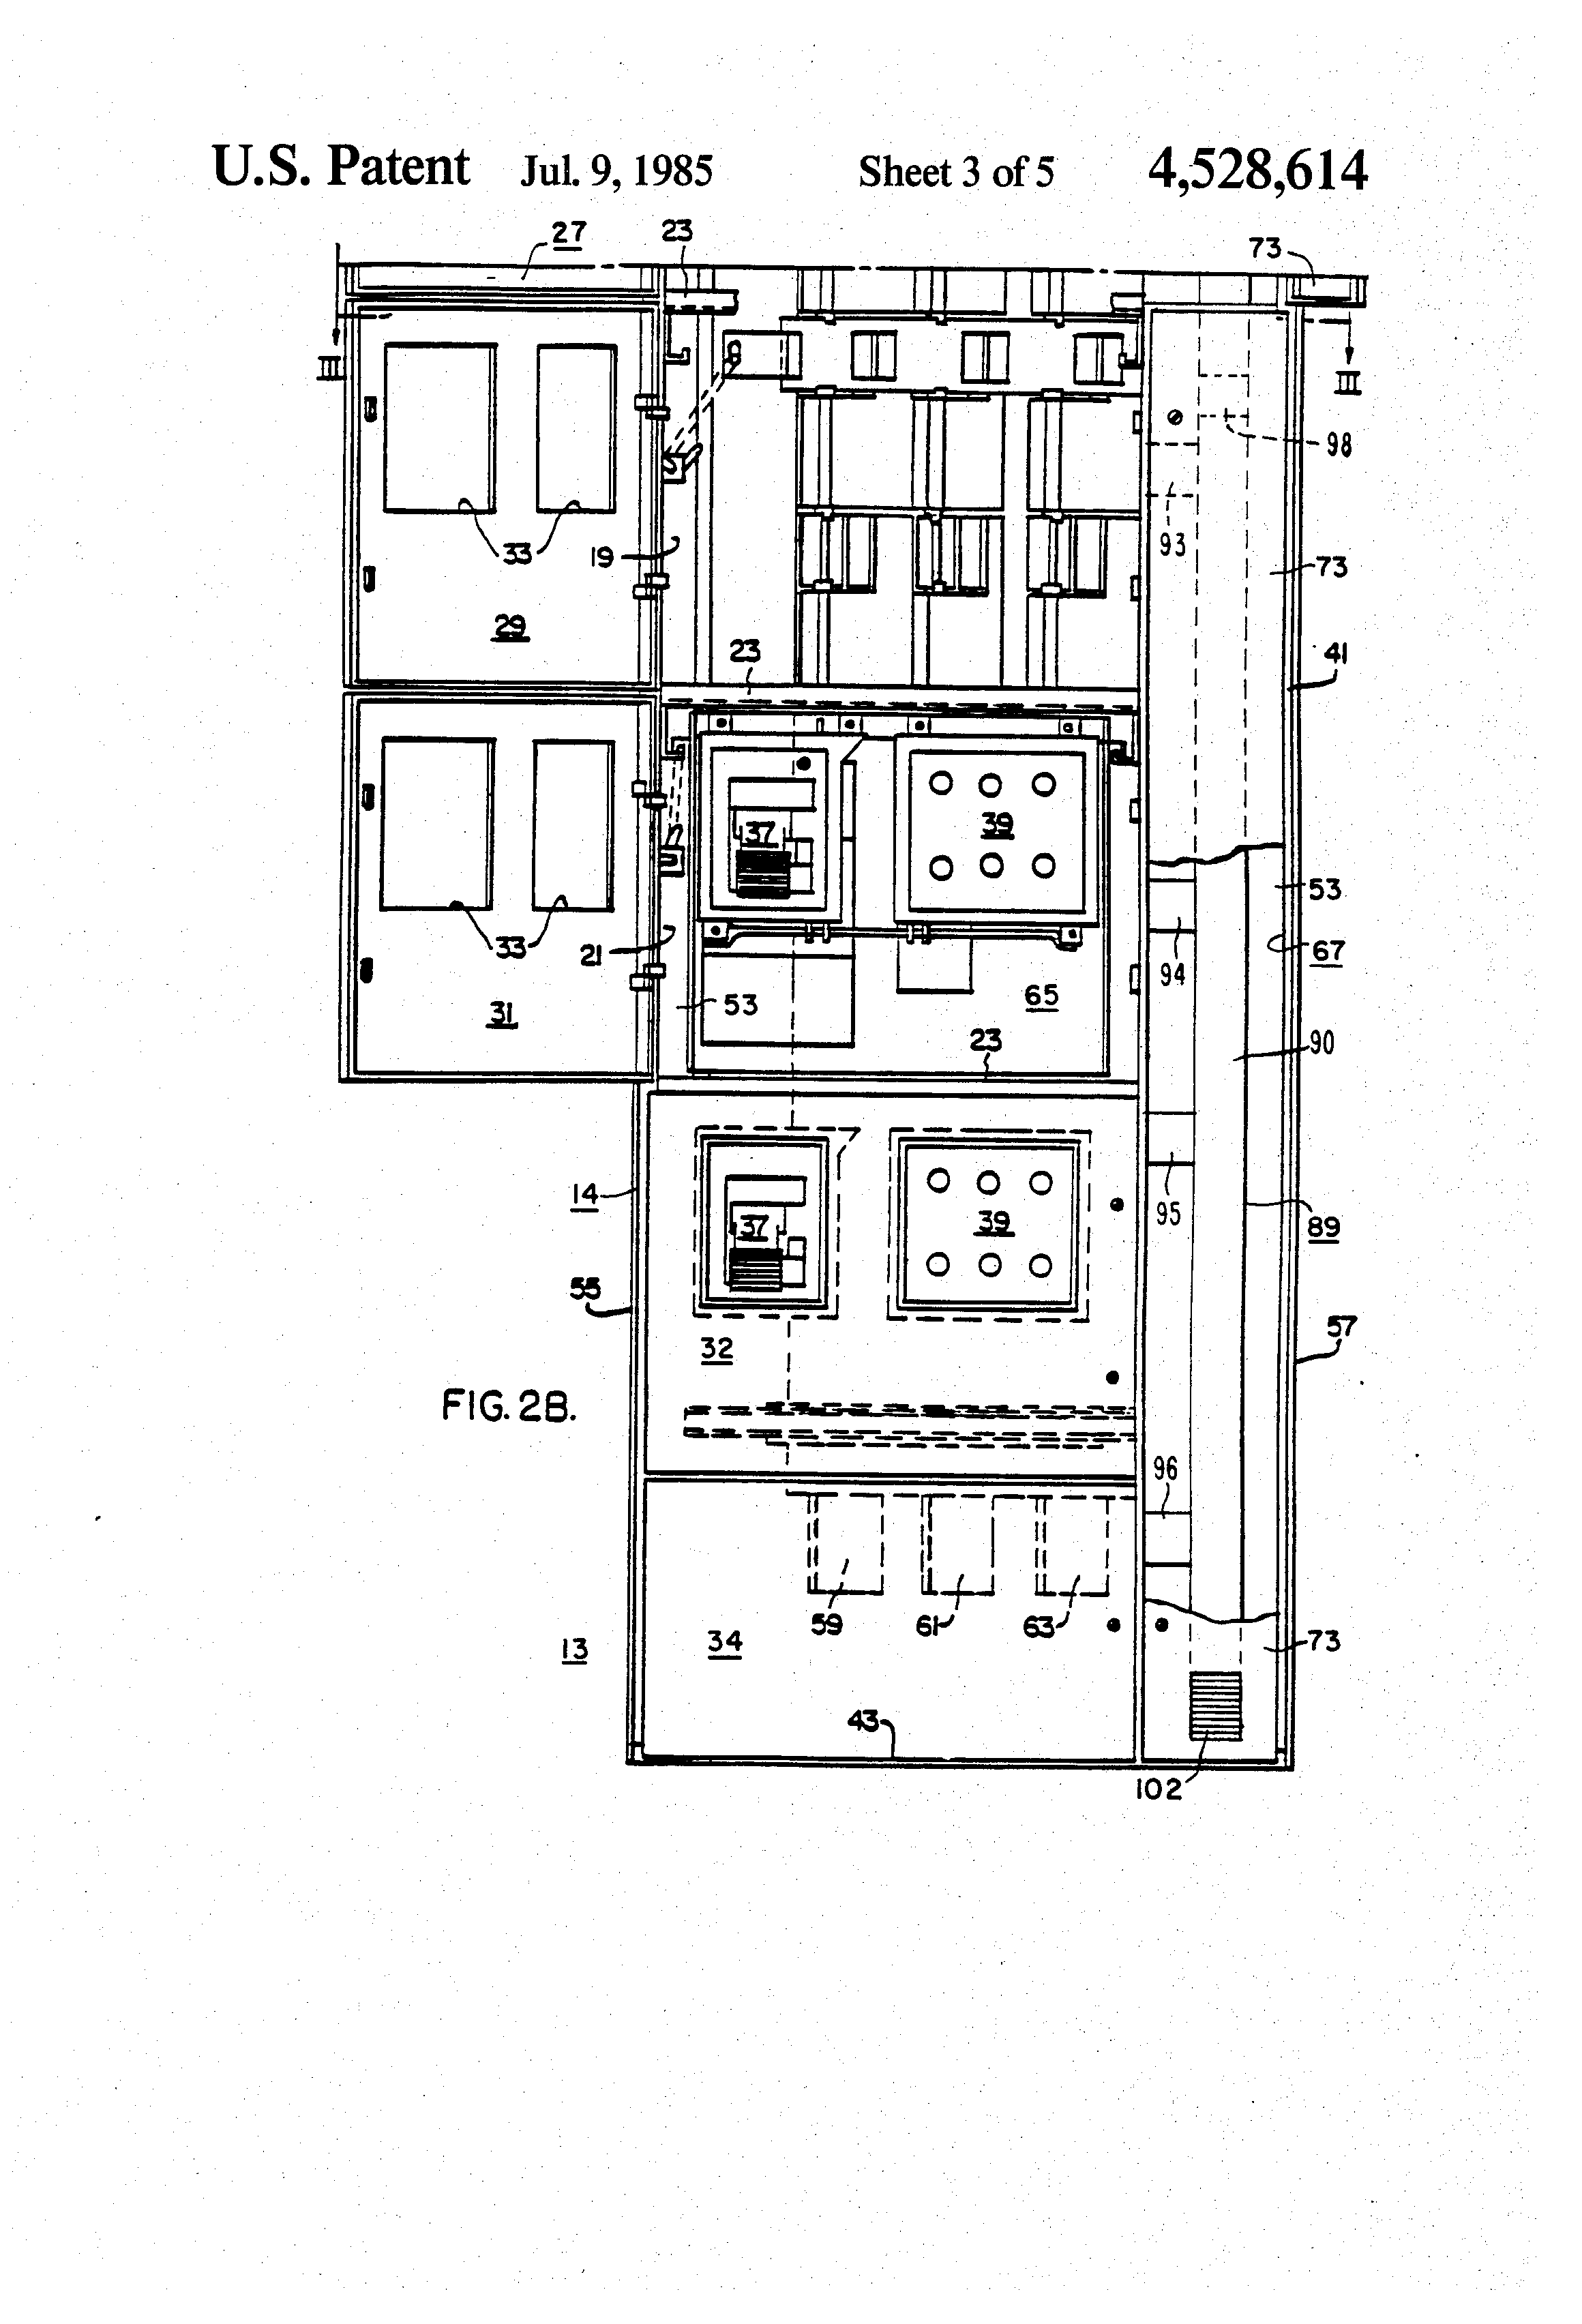 Extending Branch Circuit Electrical Best Schematic Multi Wire Diagram Patent Us4528614 Electric Control Center Having Integral 3